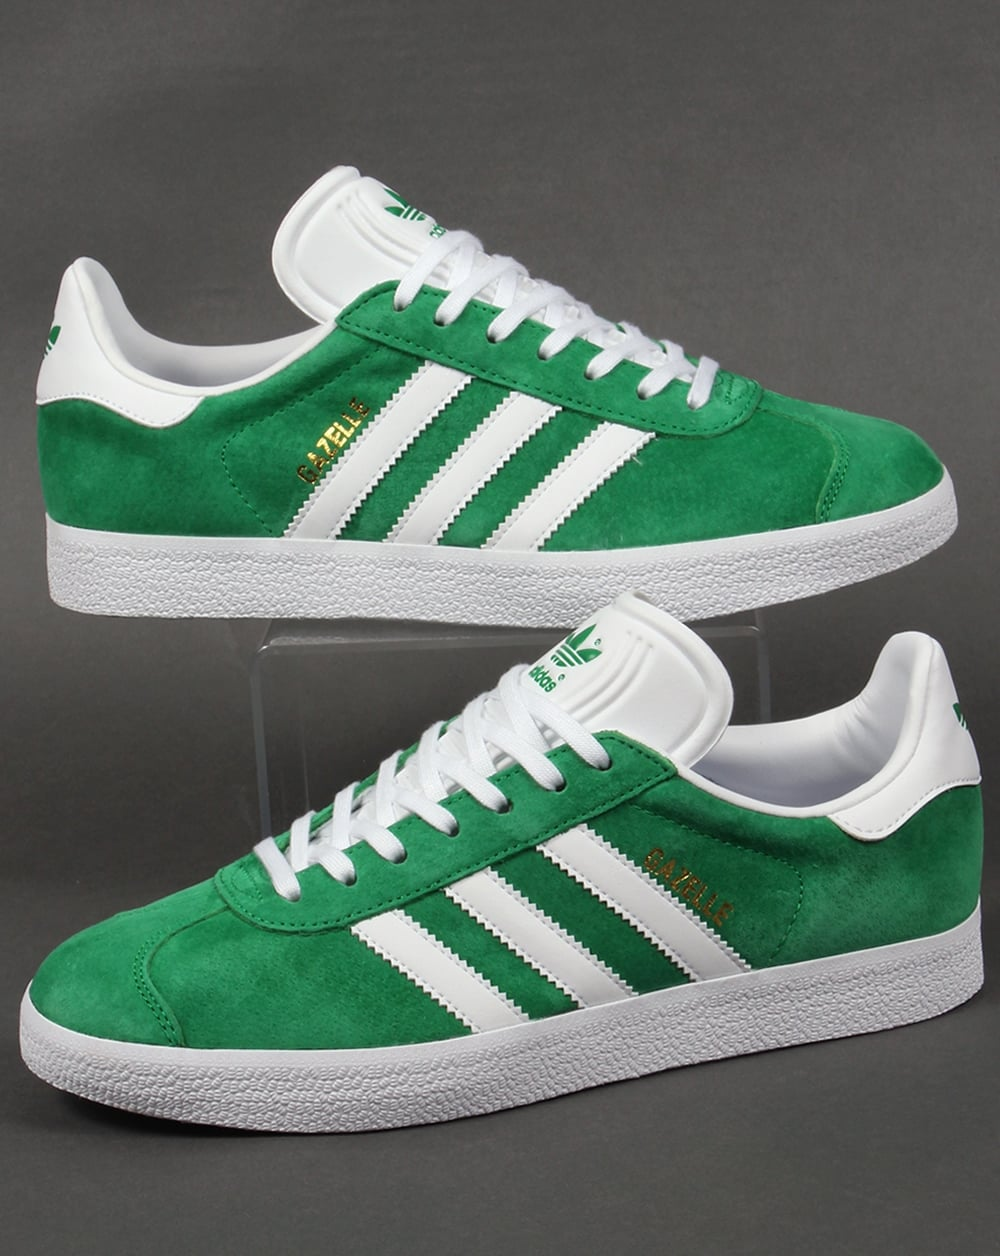 white and green adidas trainers